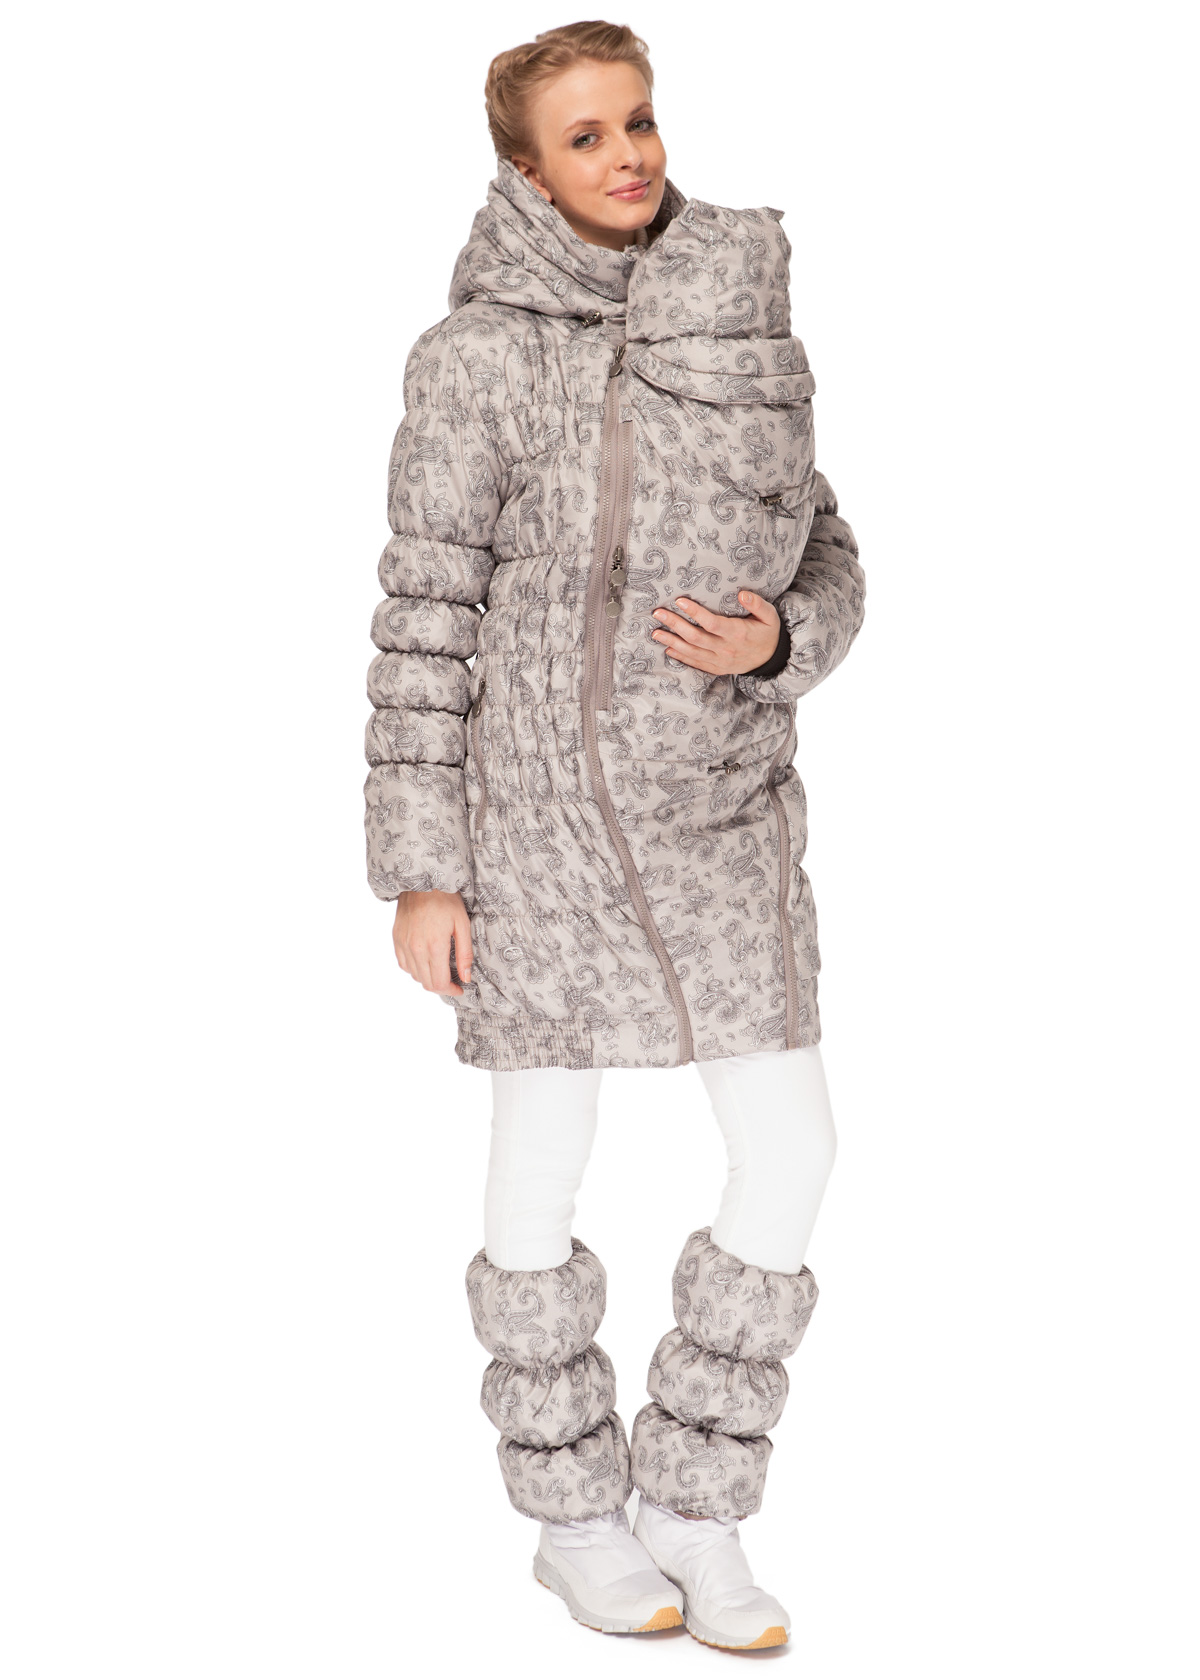 Iceland Maternity 3in1 Sling Panel Puffer Winter Coat In Beige With Paisley